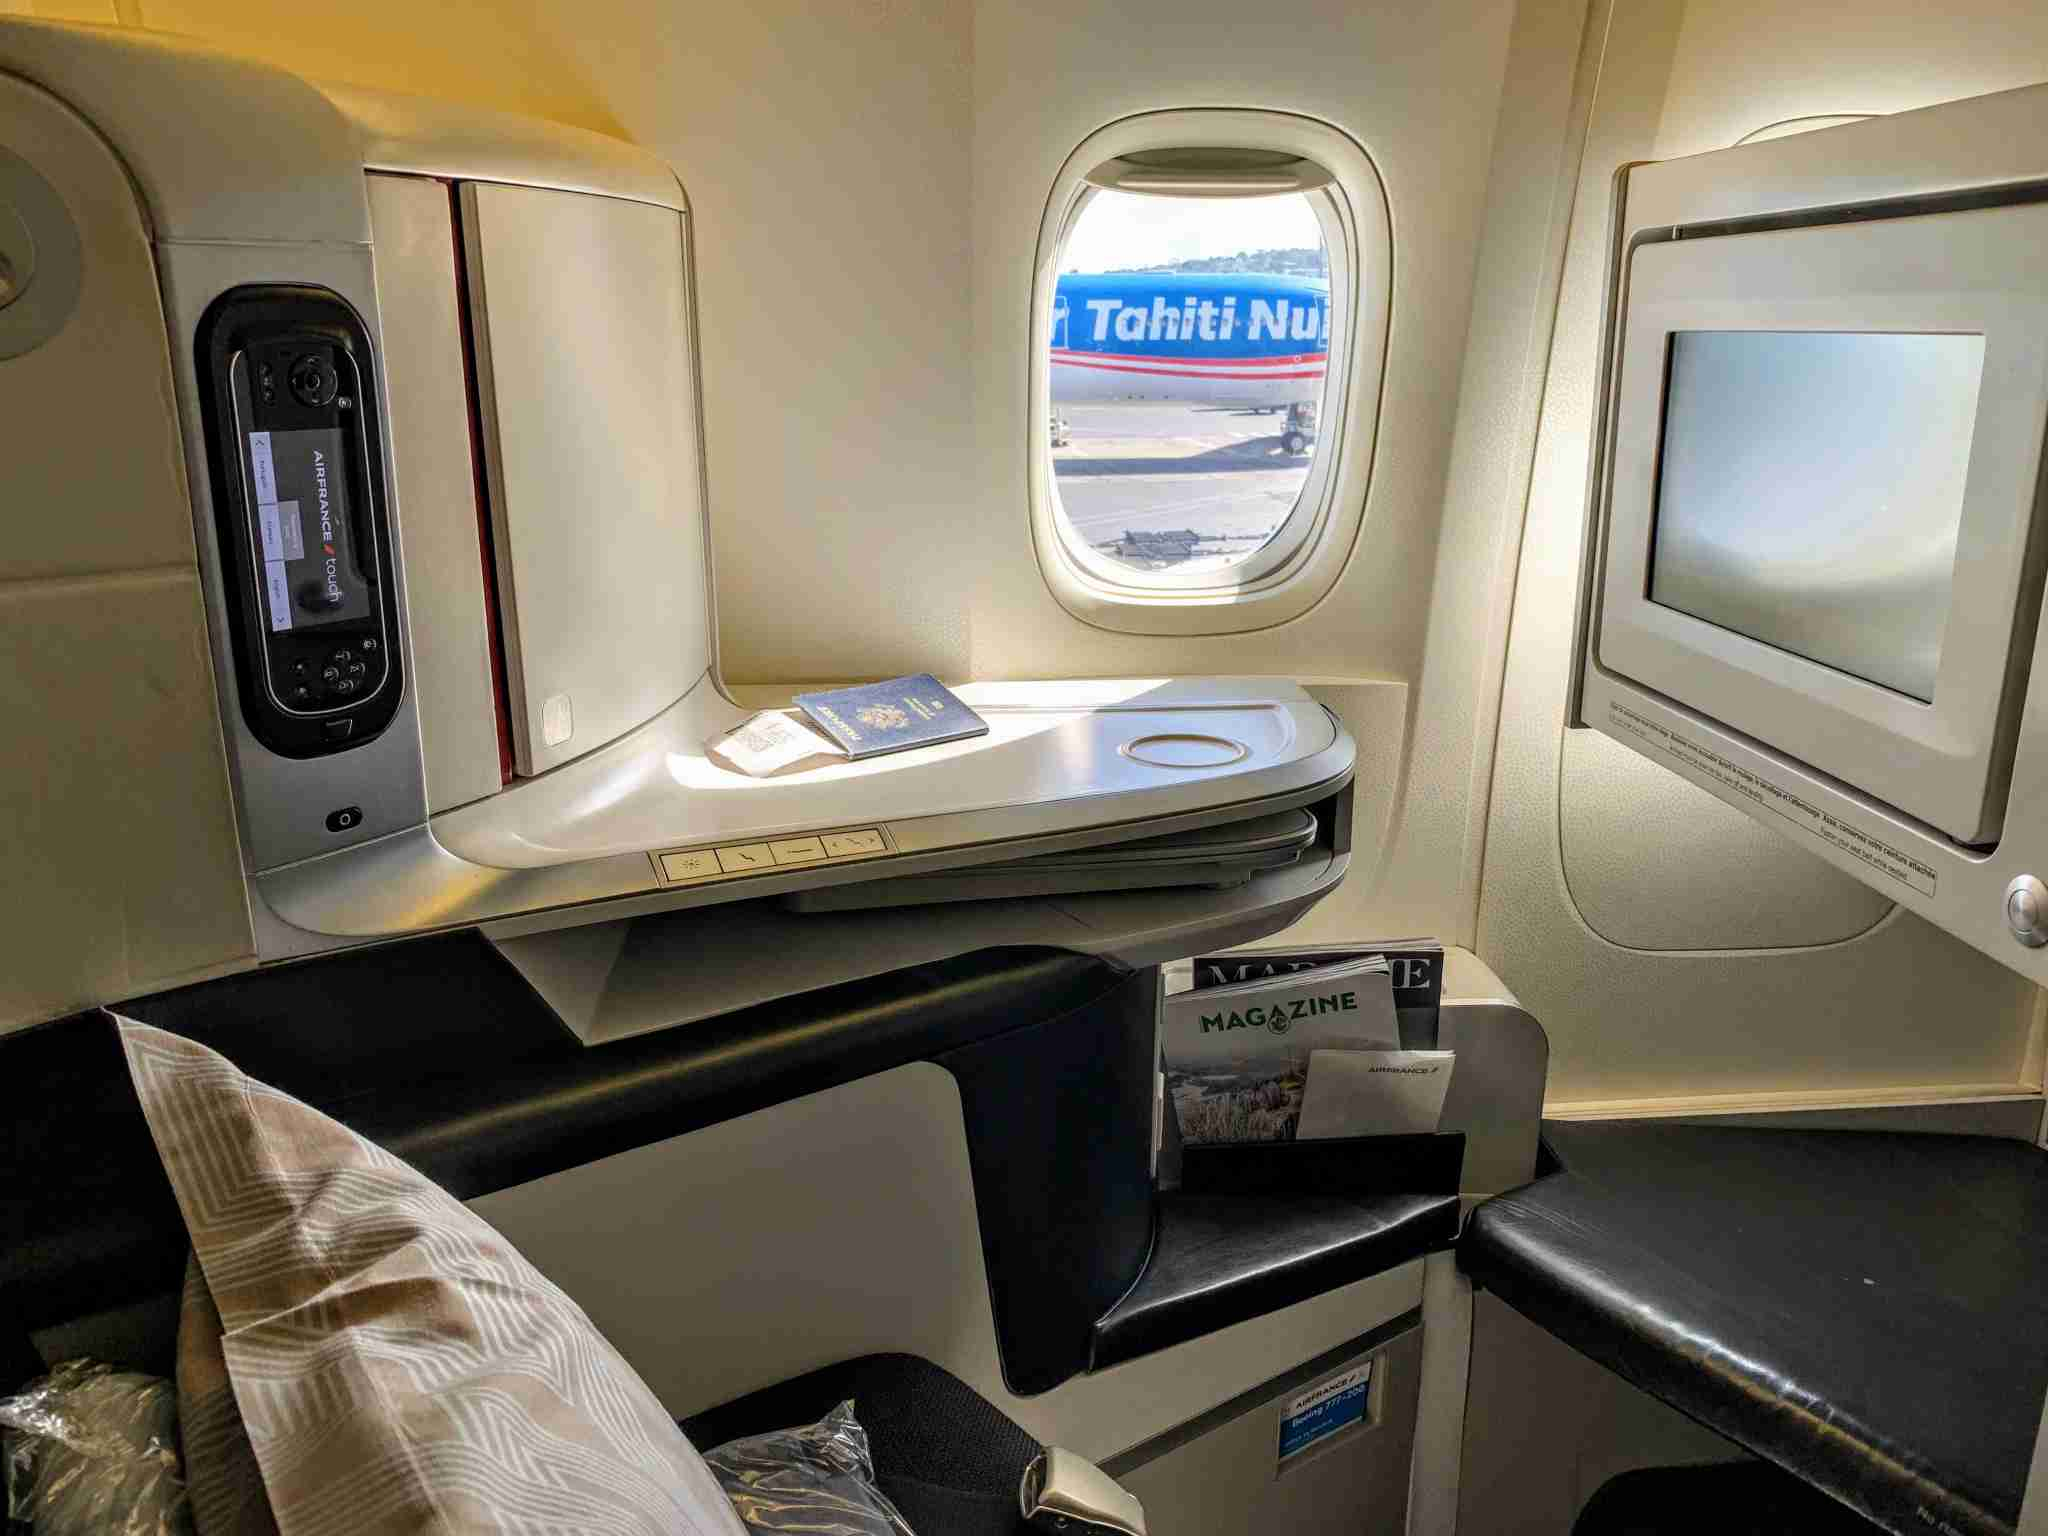 Air France Boeing 777 Business Class Seat tight window